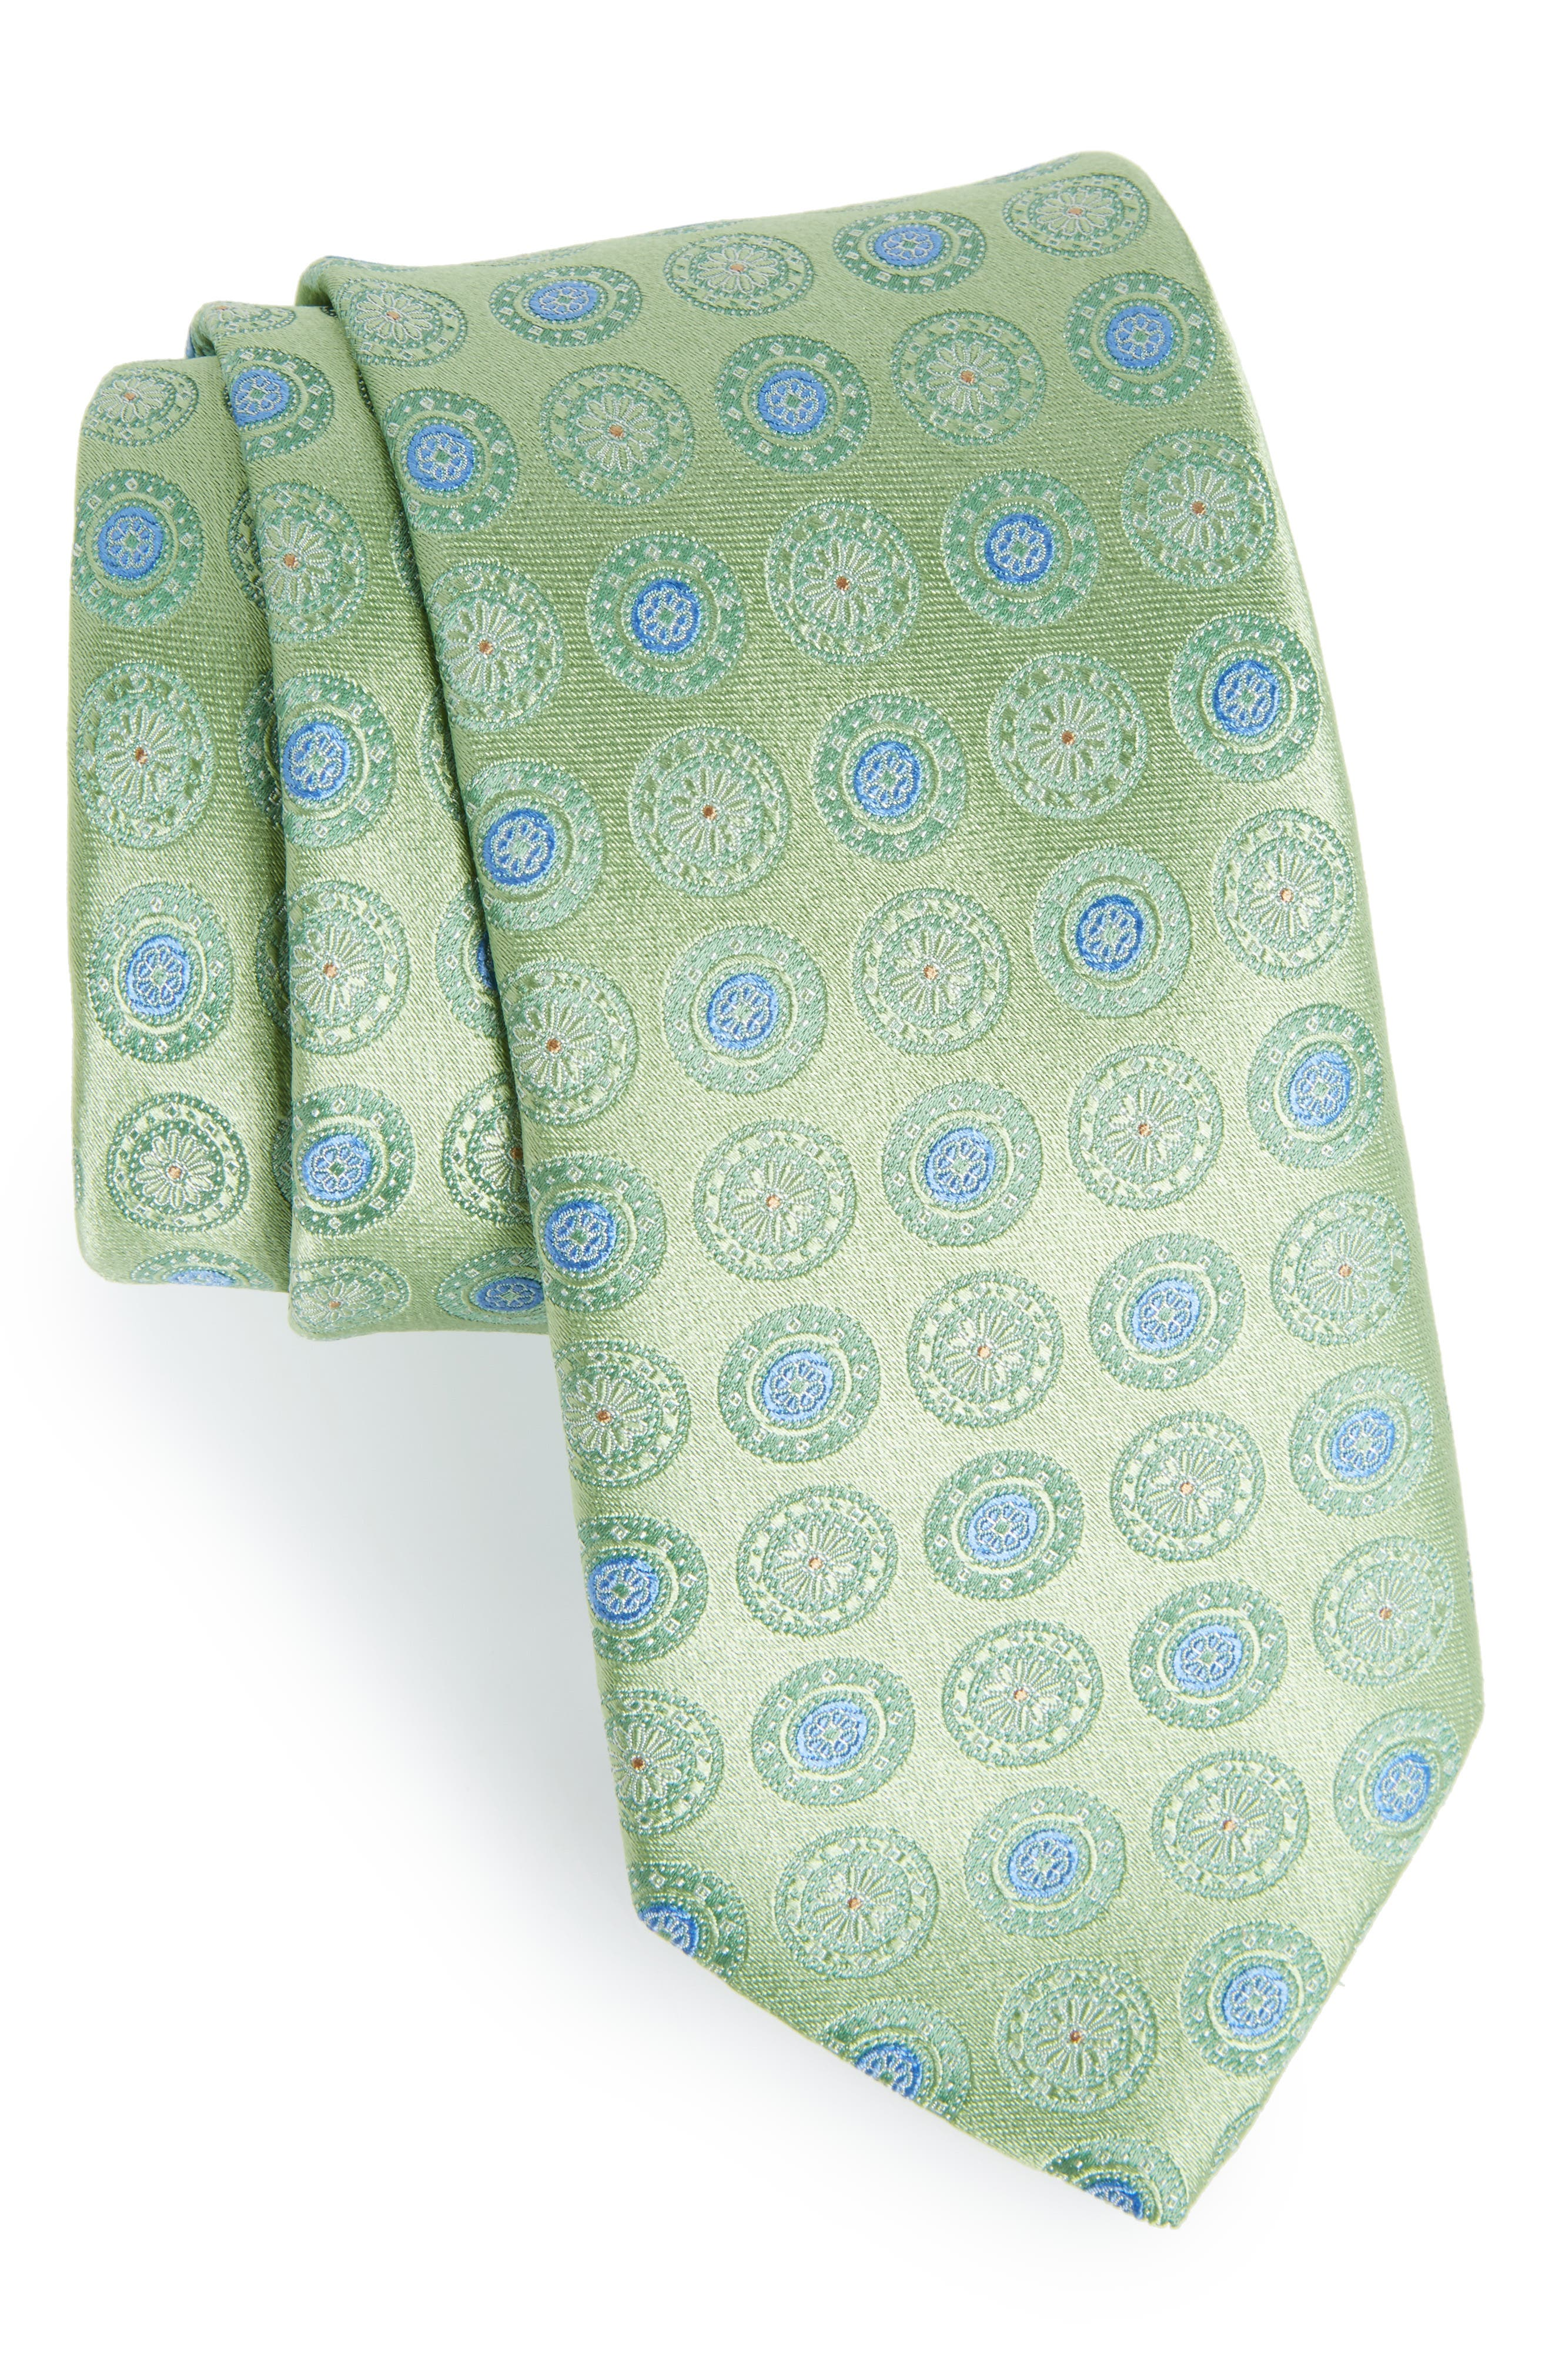 Medallion Silk Tie,                             Main thumbnail 1, color,                             300